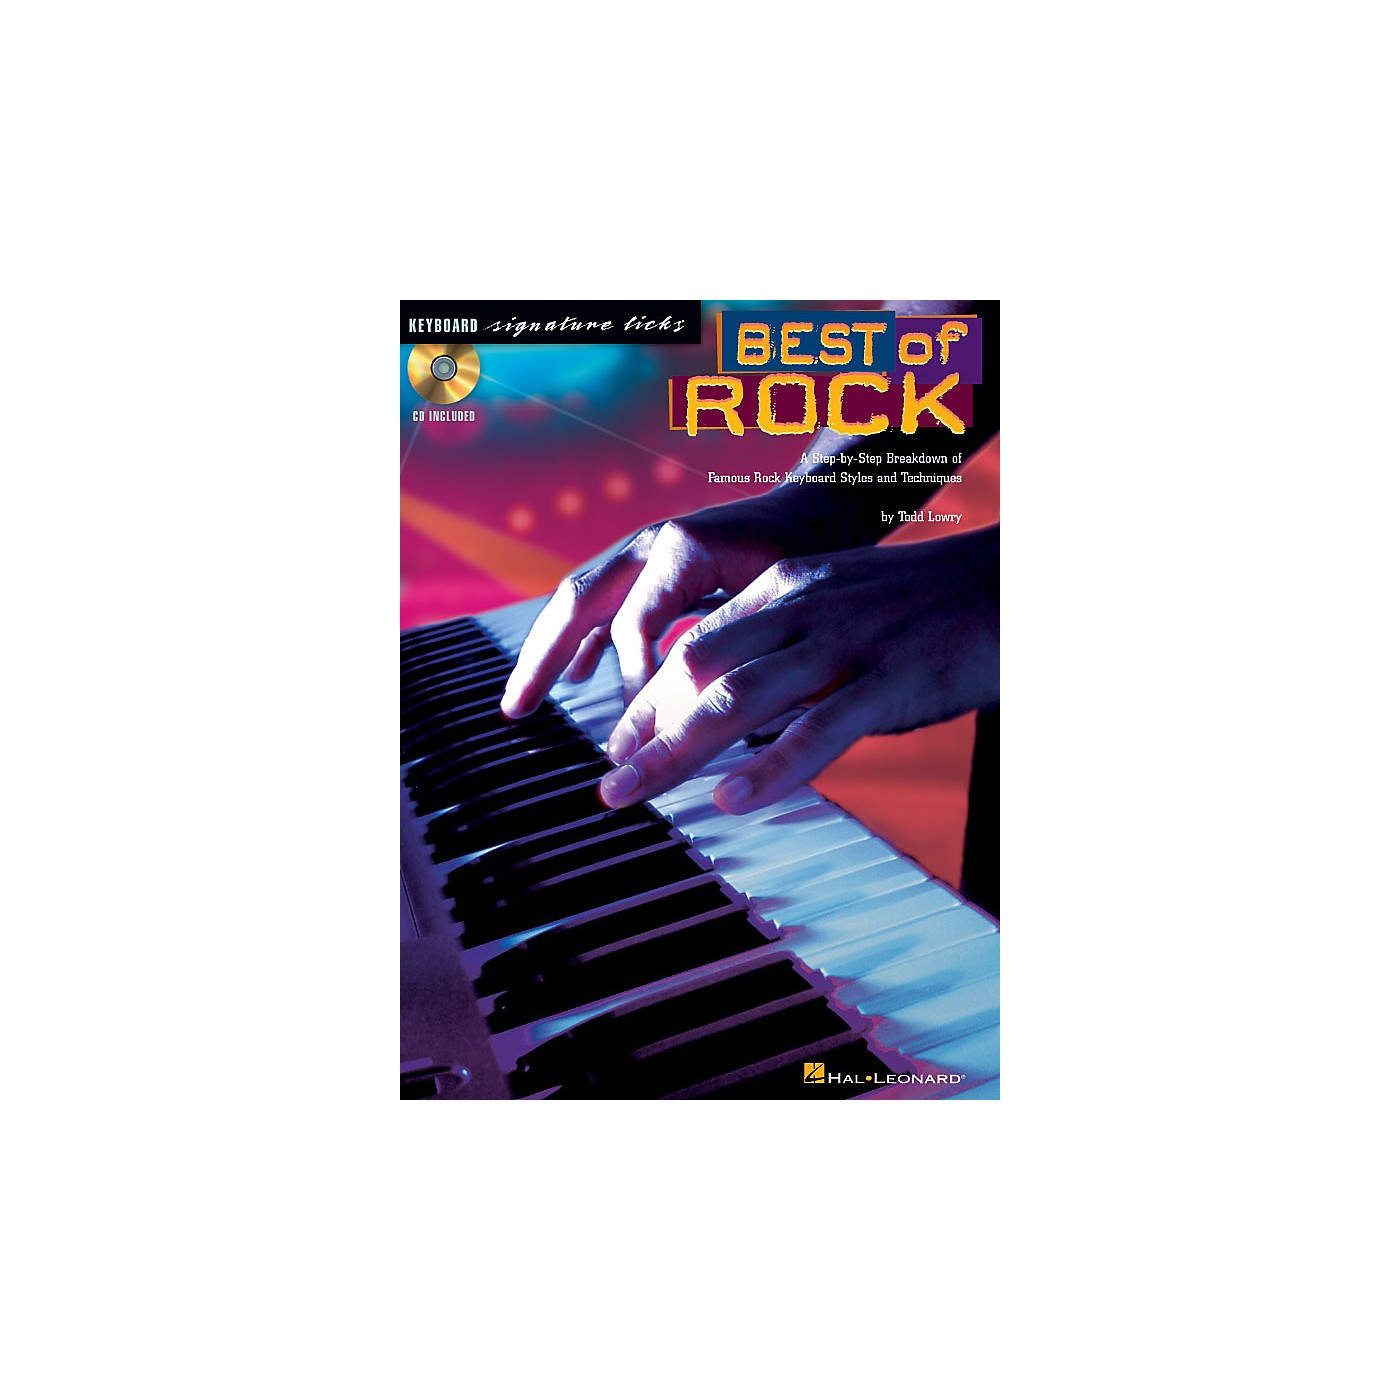 Hal Leonard Best of Rock Signature Licks Keyboard Series Softcover with CD Written by Todd Lowry thumbnail